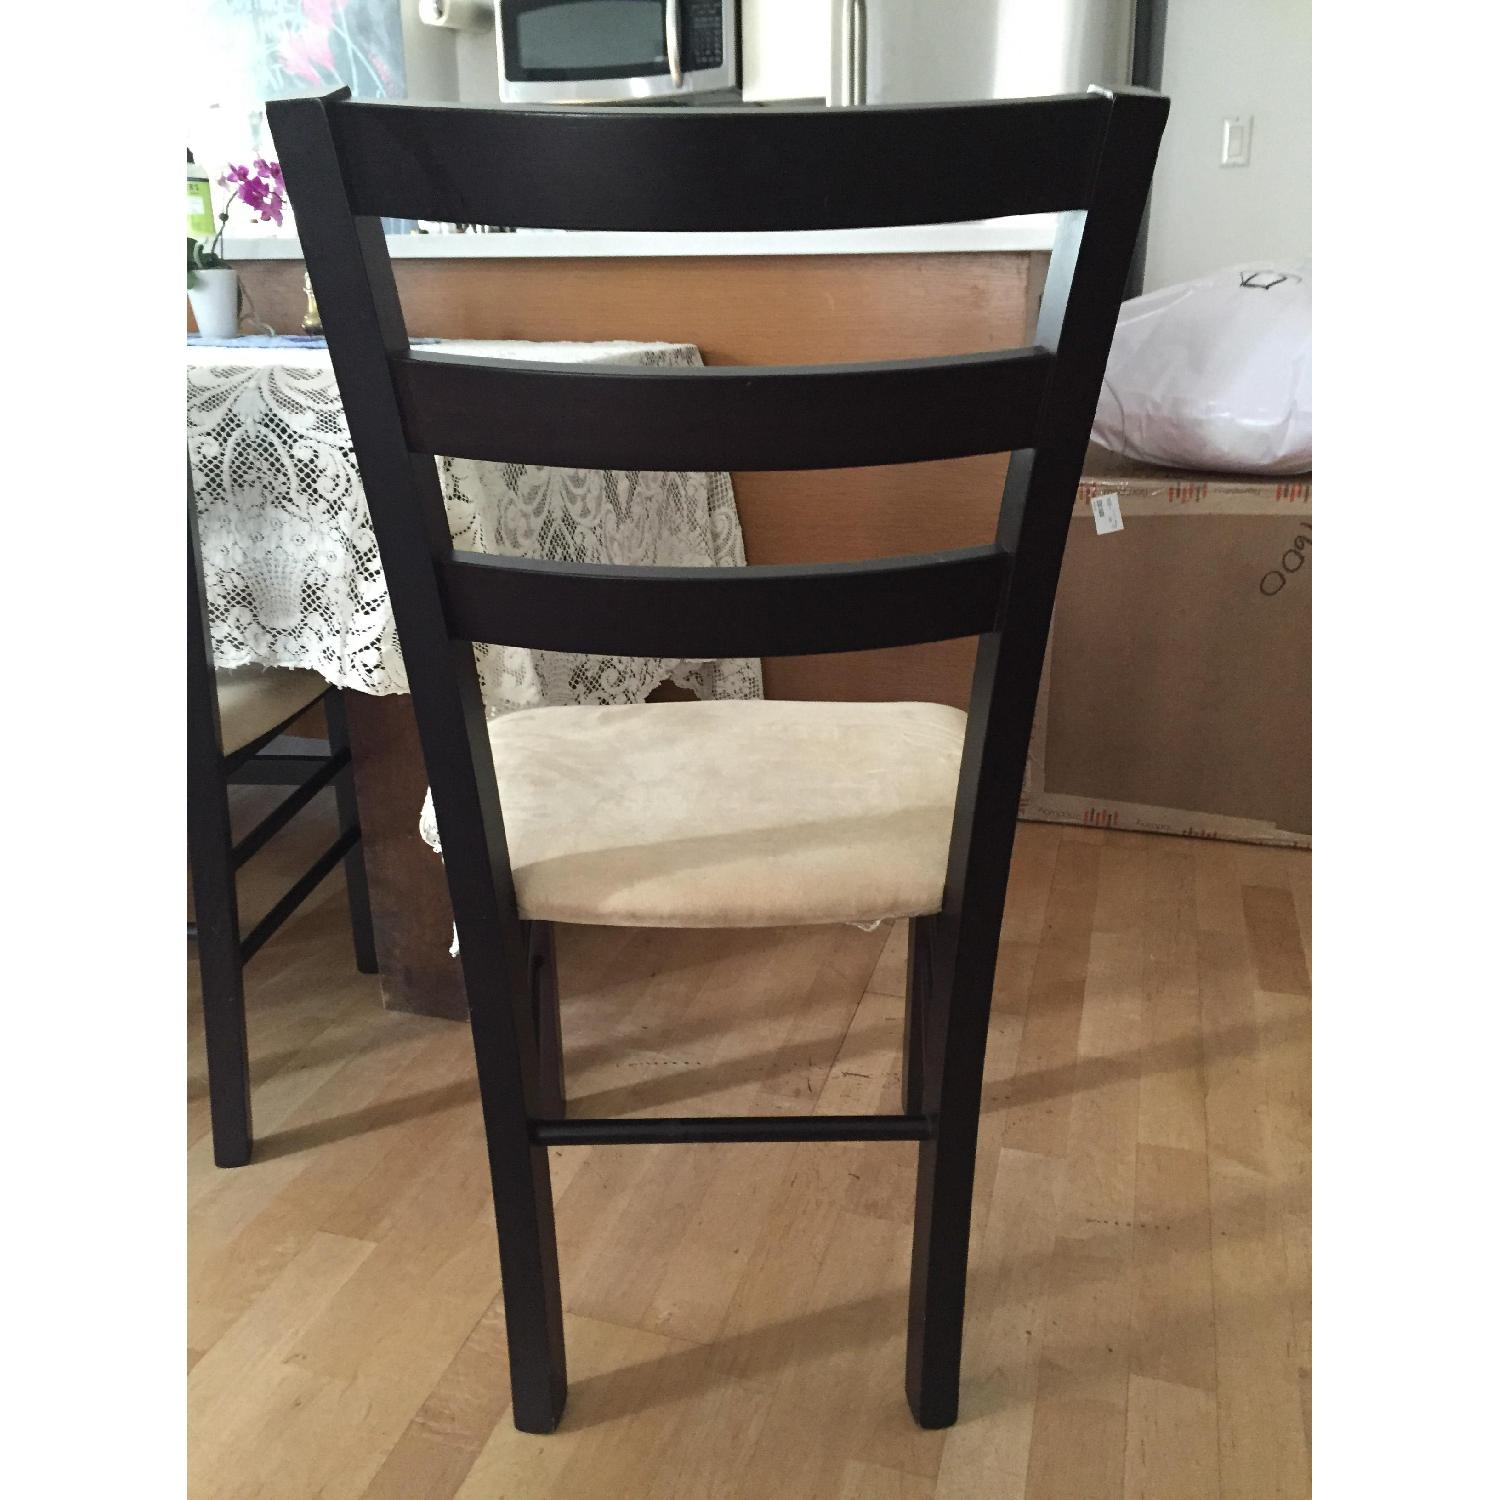 Macy's Wood & Tan Suede Dining Chairs - image-4